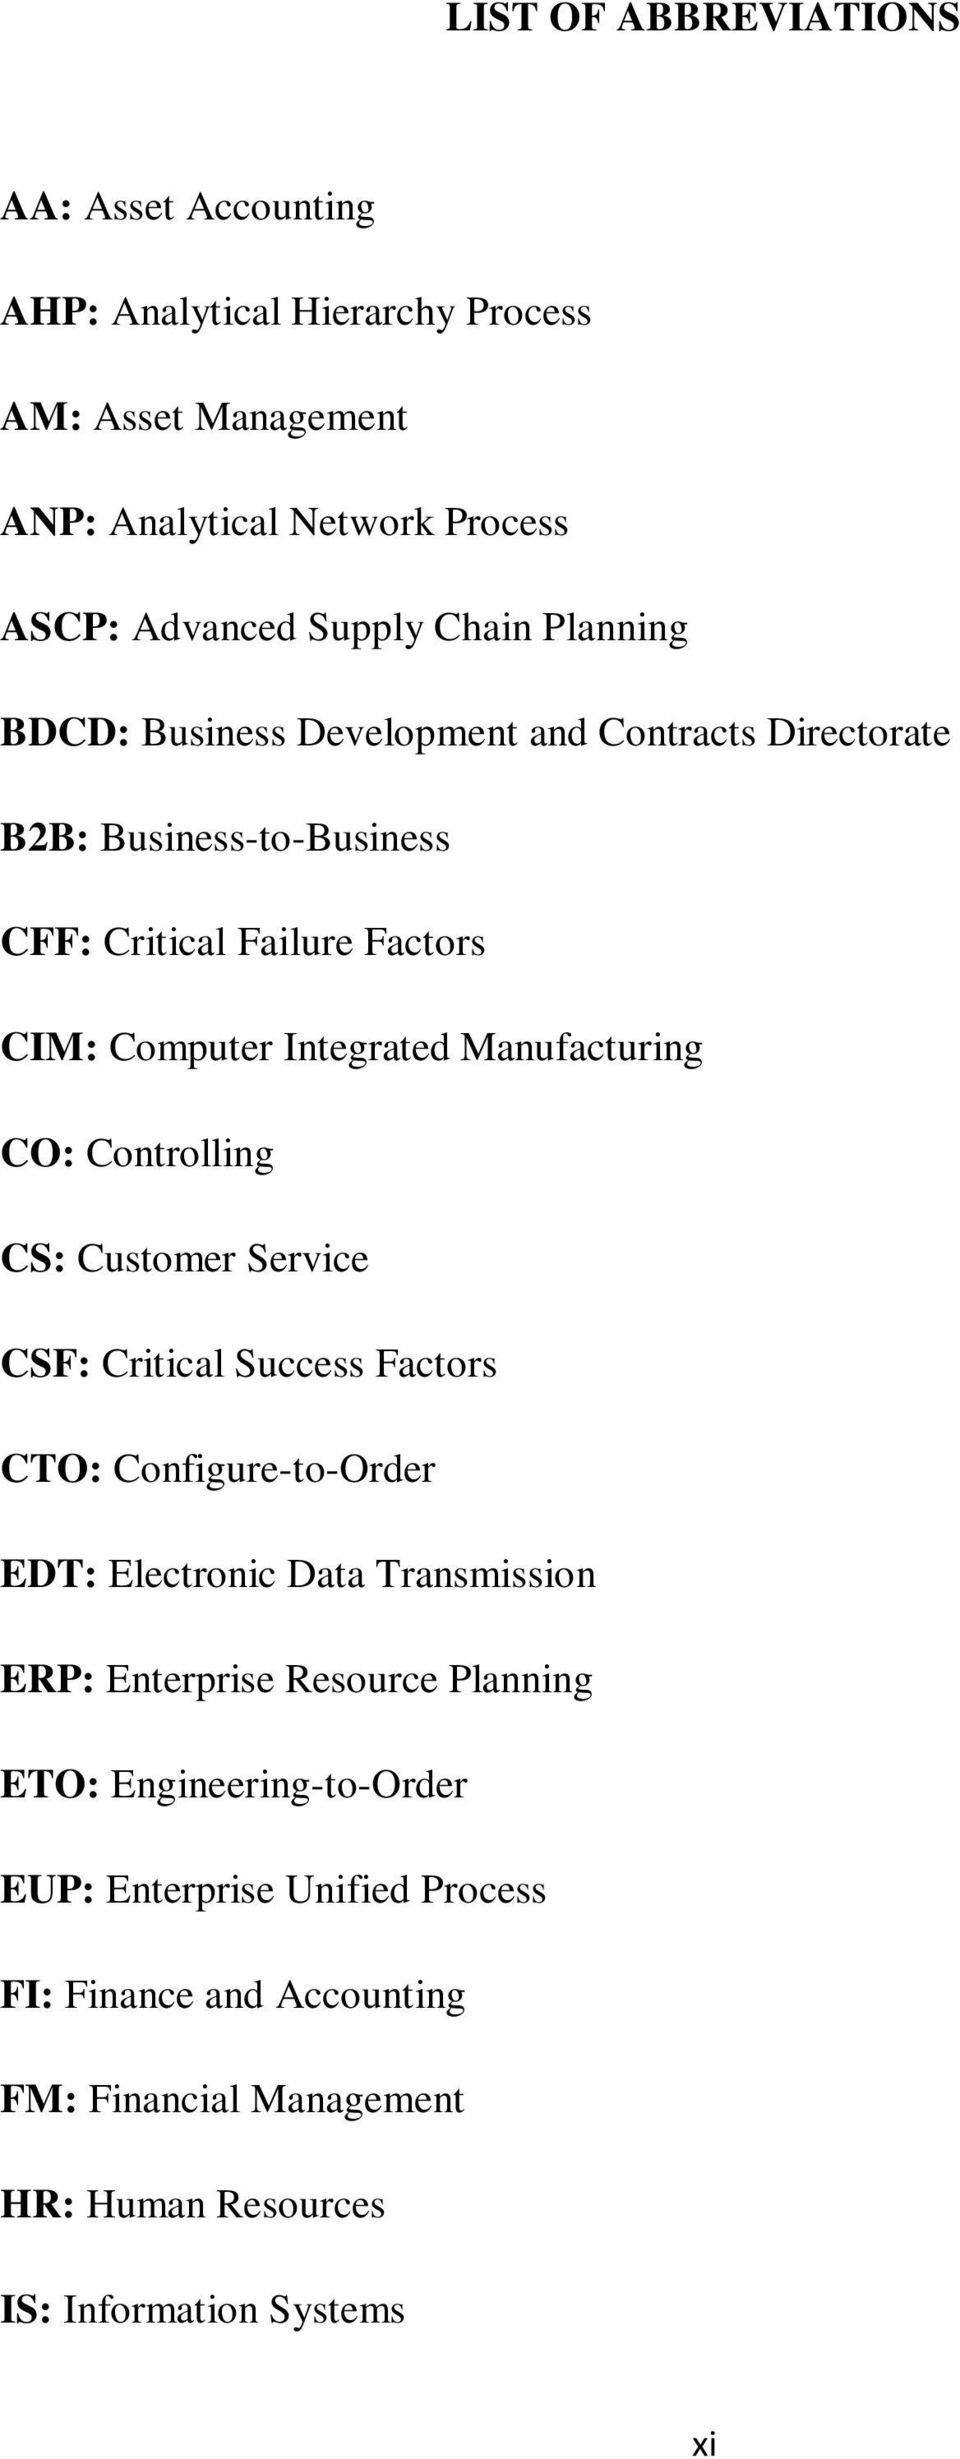 CO: Controlling CS: Customer Service CSF: Critical Success Factors CTO: Configure-to-Order EDT: Electronic Data Transmission ERP: Enterprise Resource